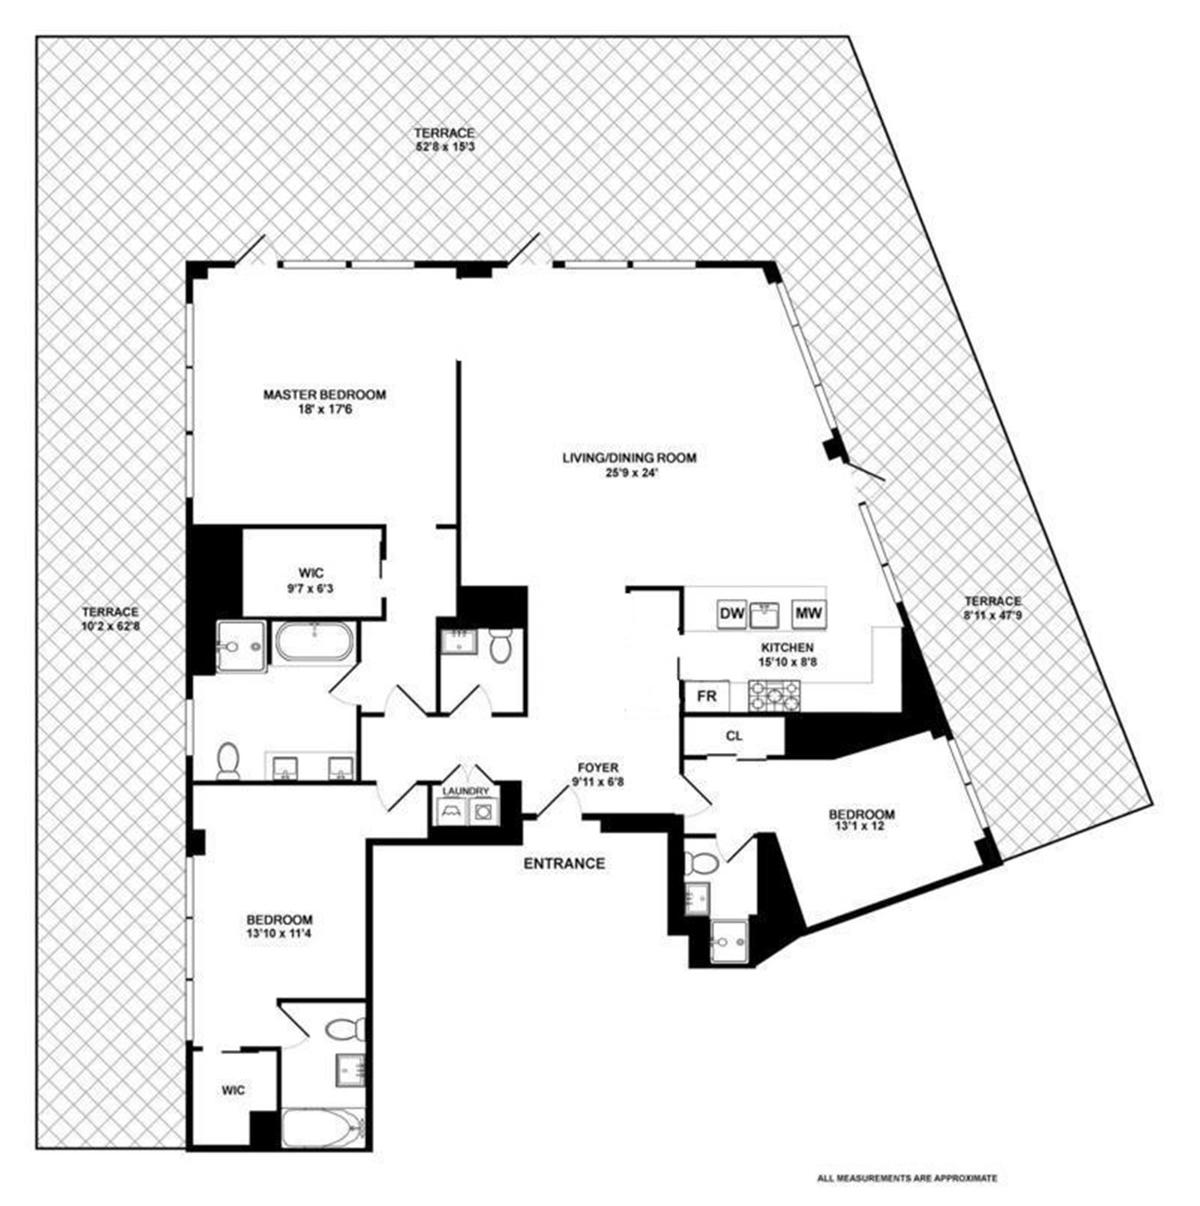 Streeteasy 10 madison square west in flatiron 18c for 10 madison square west floor plans